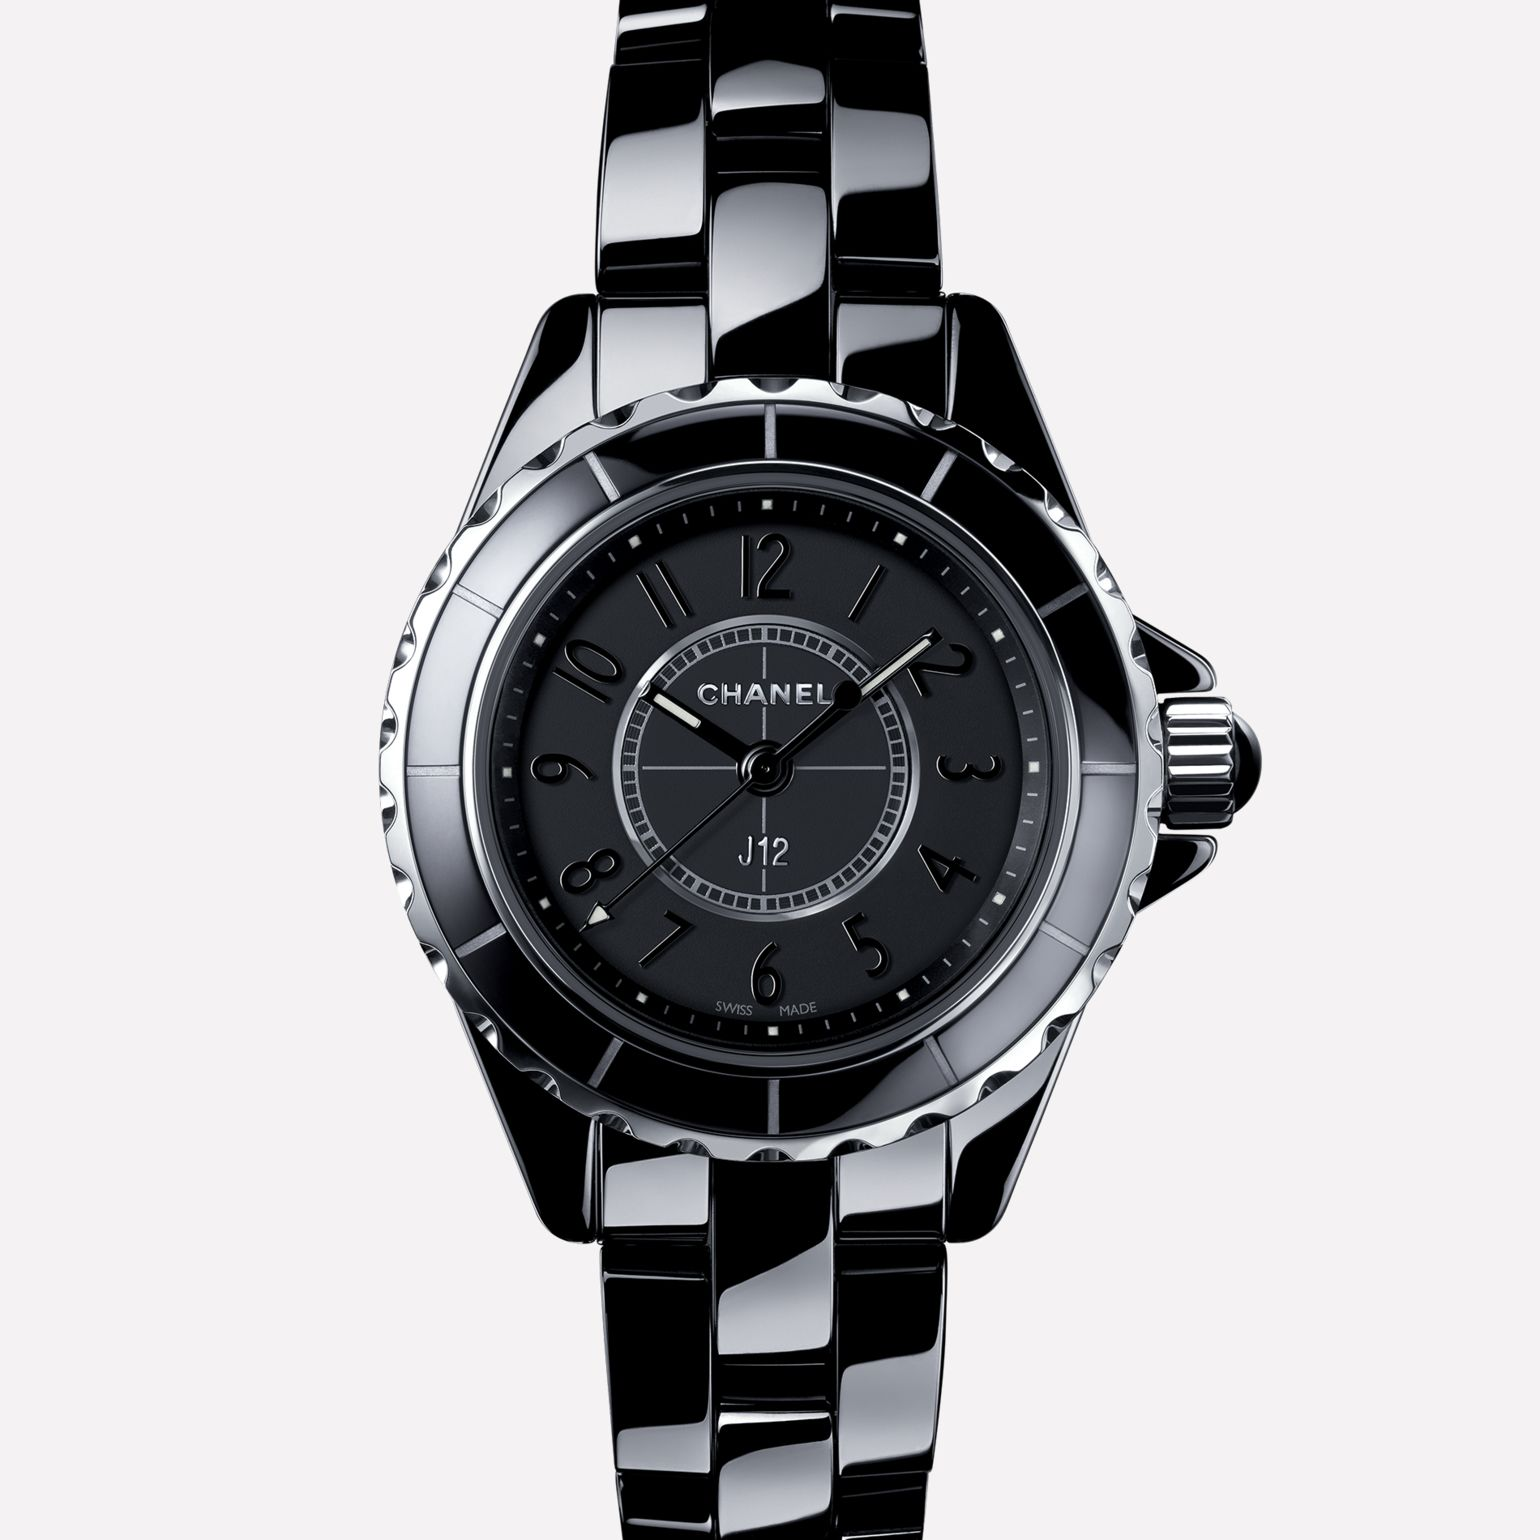 J12 Intense Black Watch Black ceramic and steel, black dial and numerals